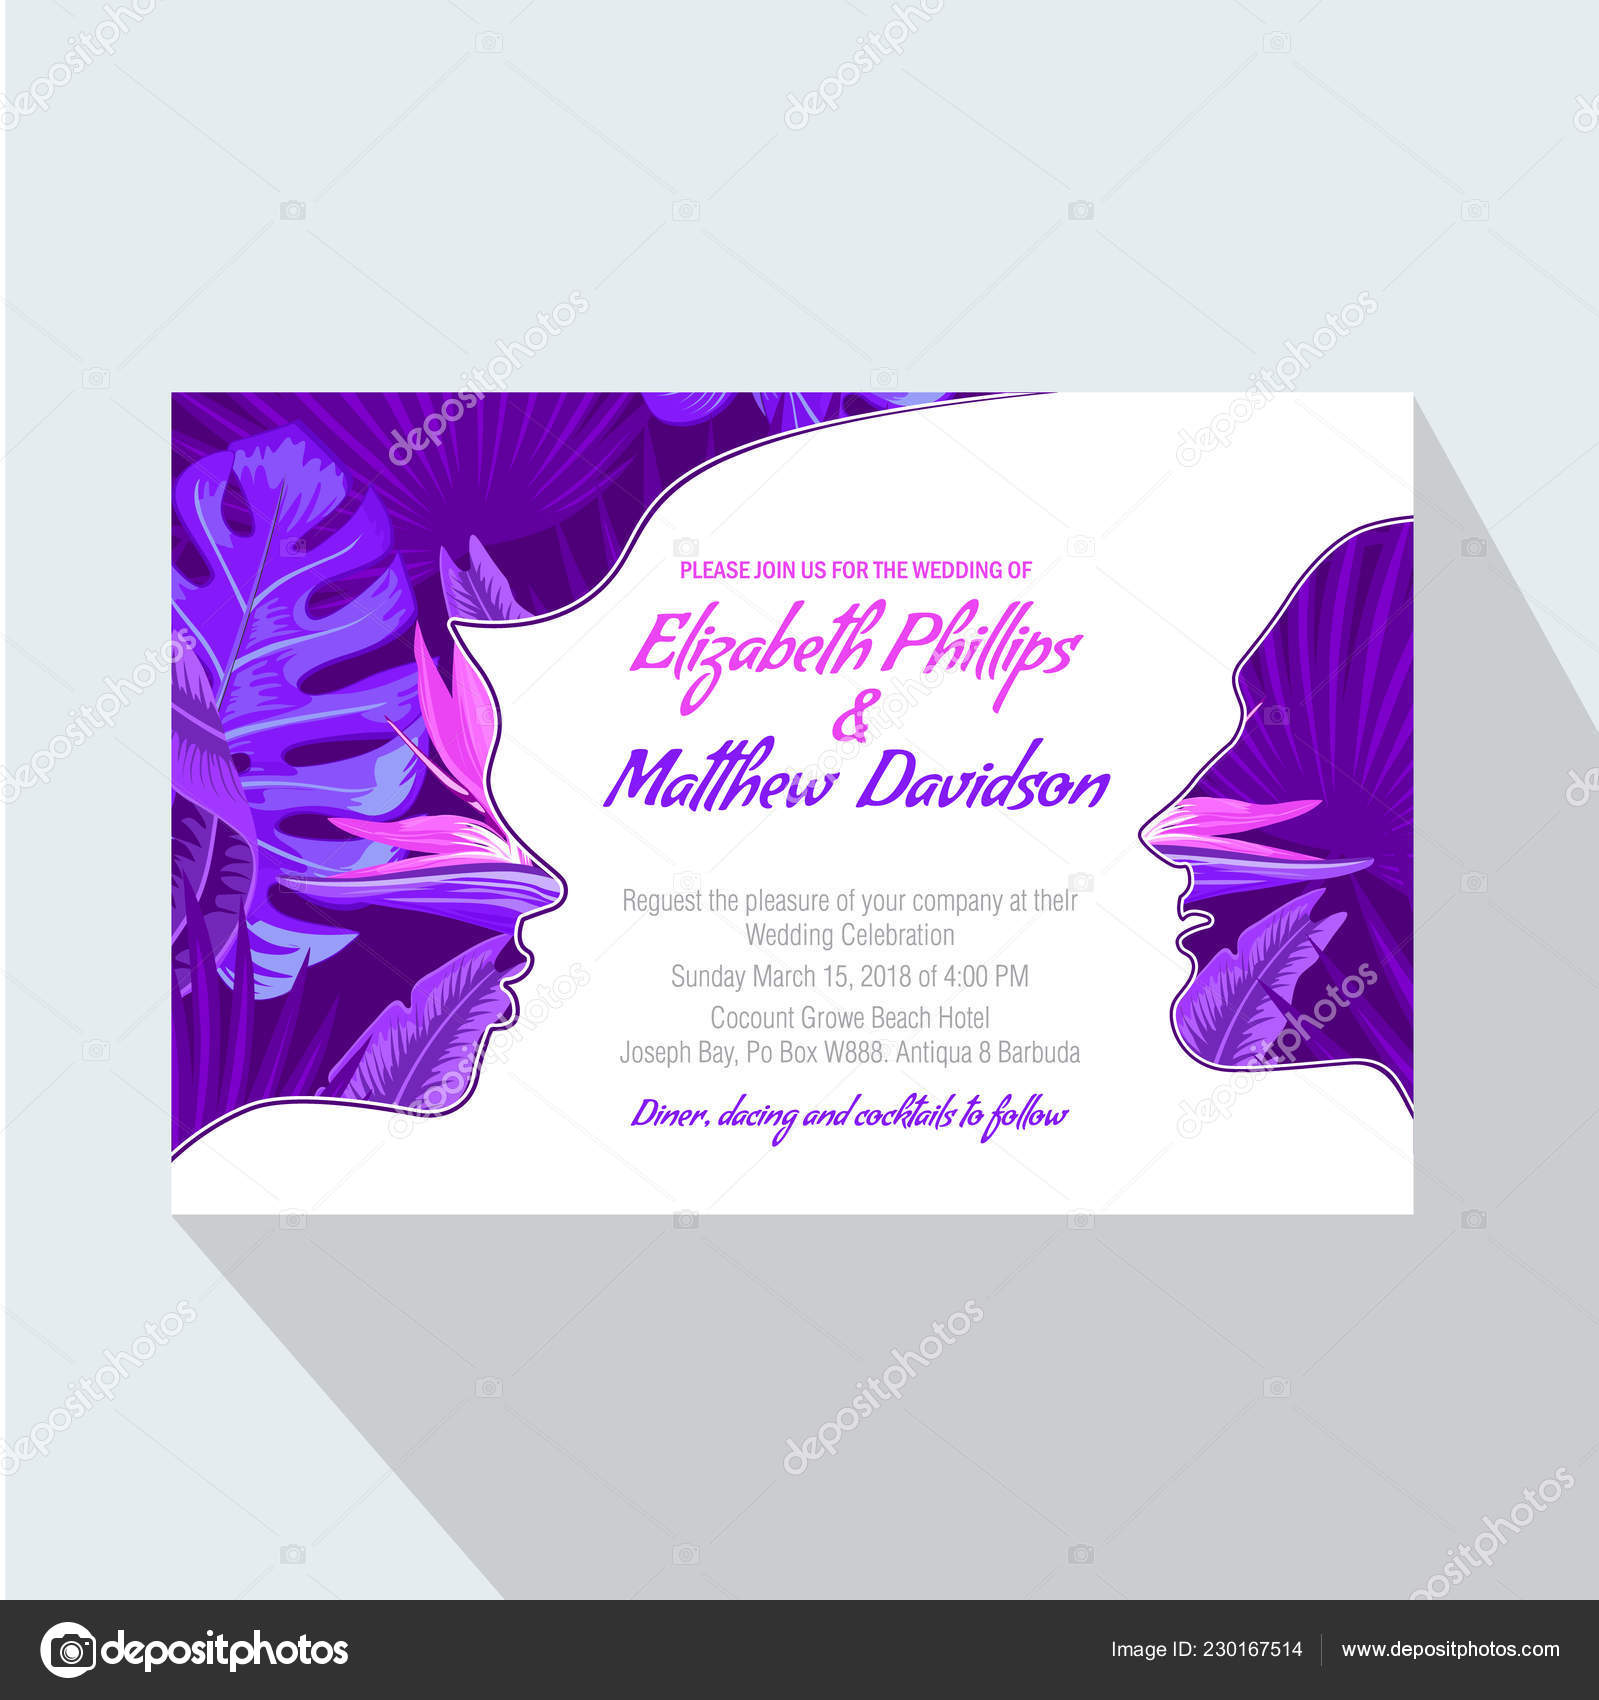 Modele Carte Invitation Mariage Vector Illustration Image